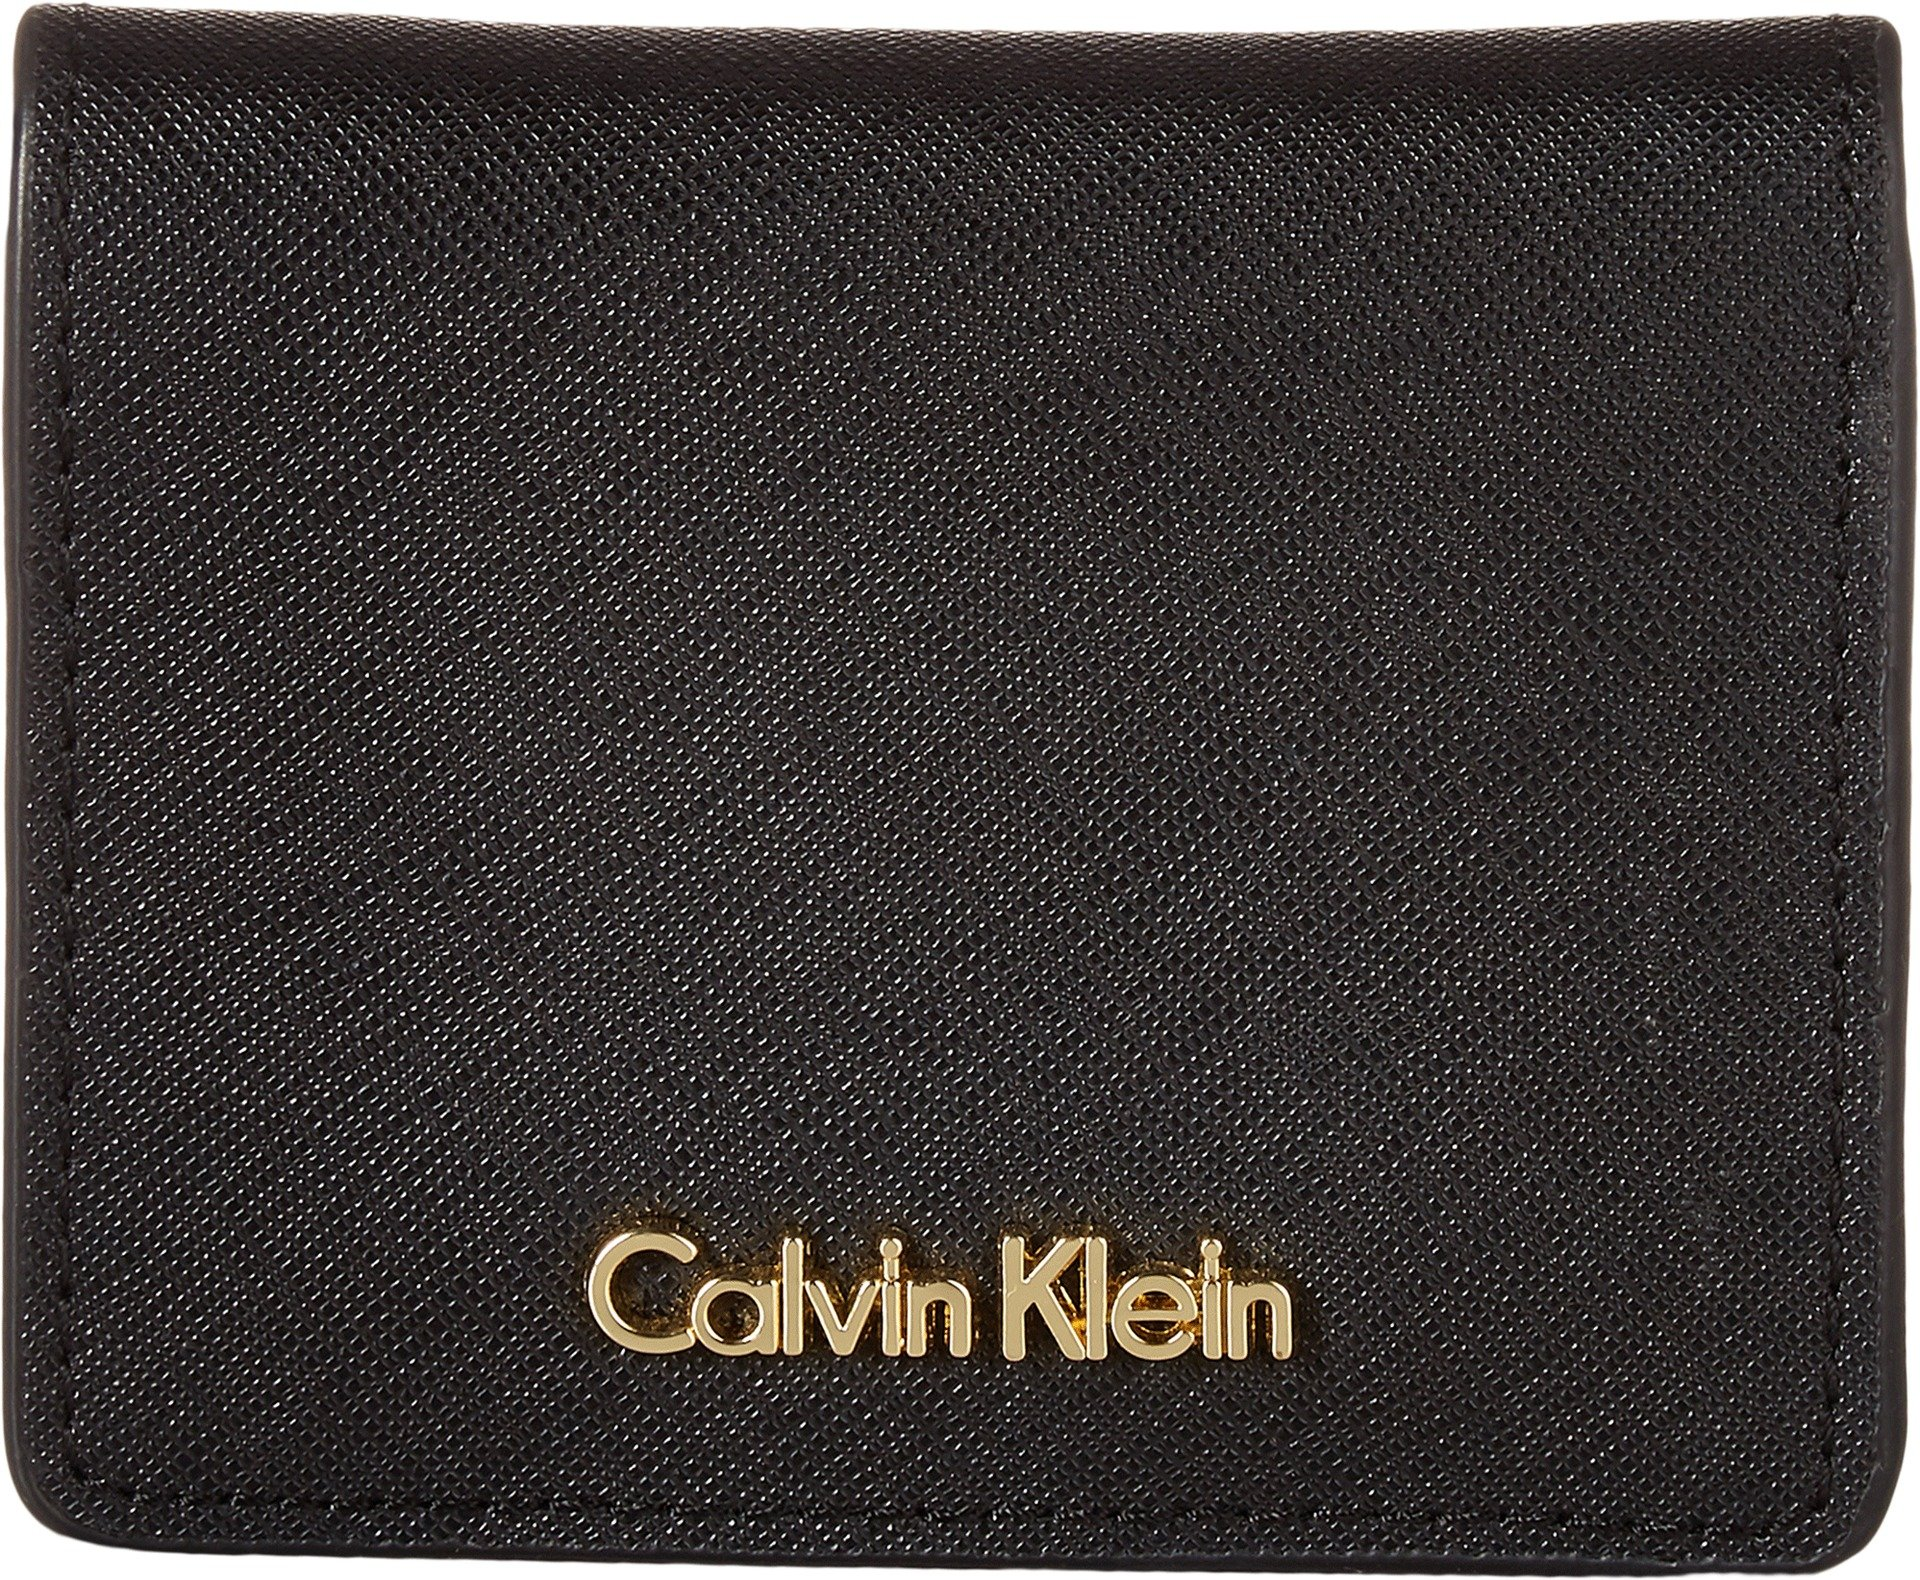 Calvin Klein Key Item Small Flap Saffiano Wallet black/Gold, One Size